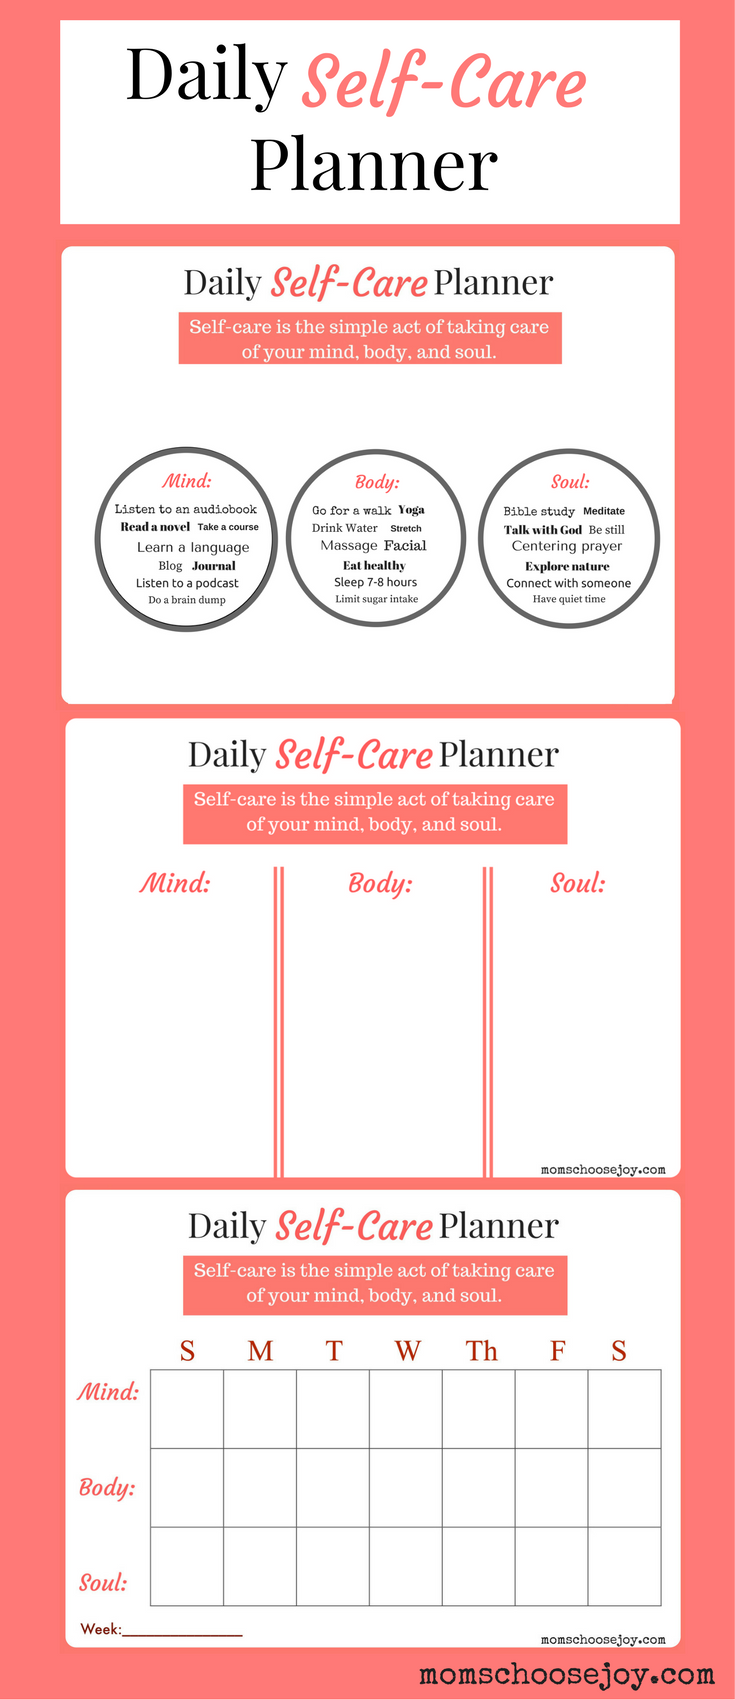 Free Daily Self-Care Planner